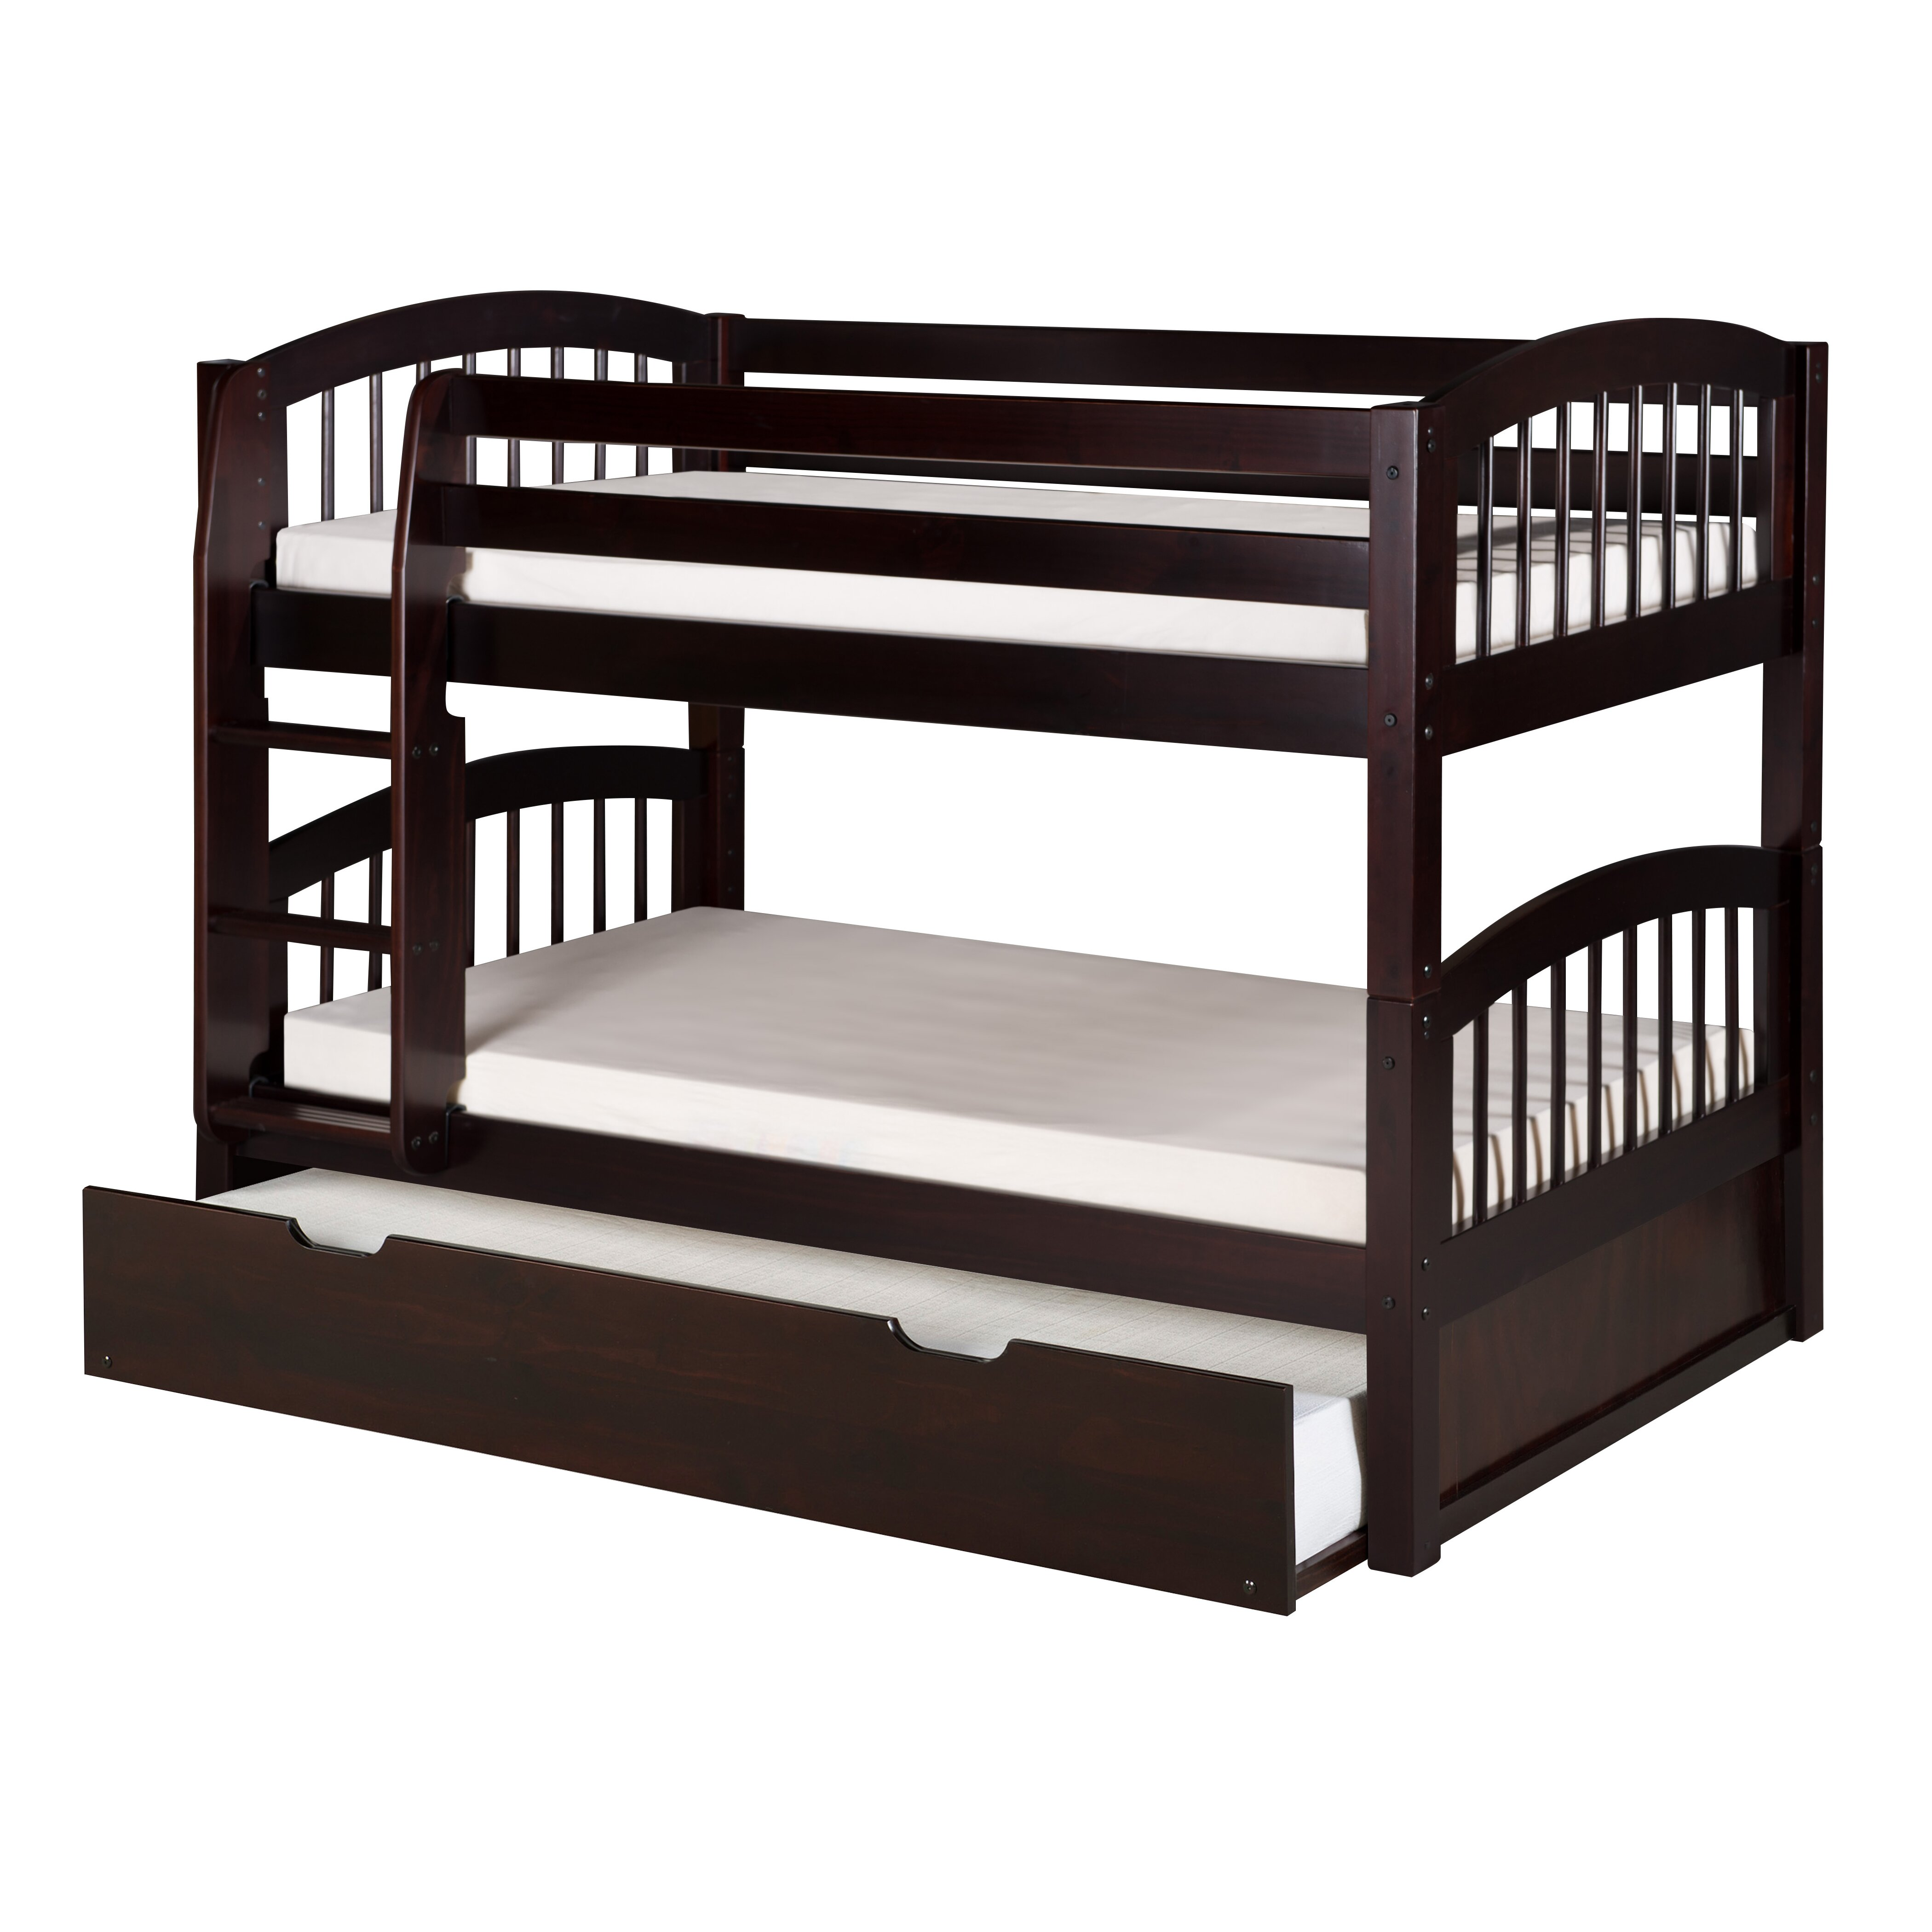 Camaflexi Camaflexi Twin Bunk Bed With Storage Reviews